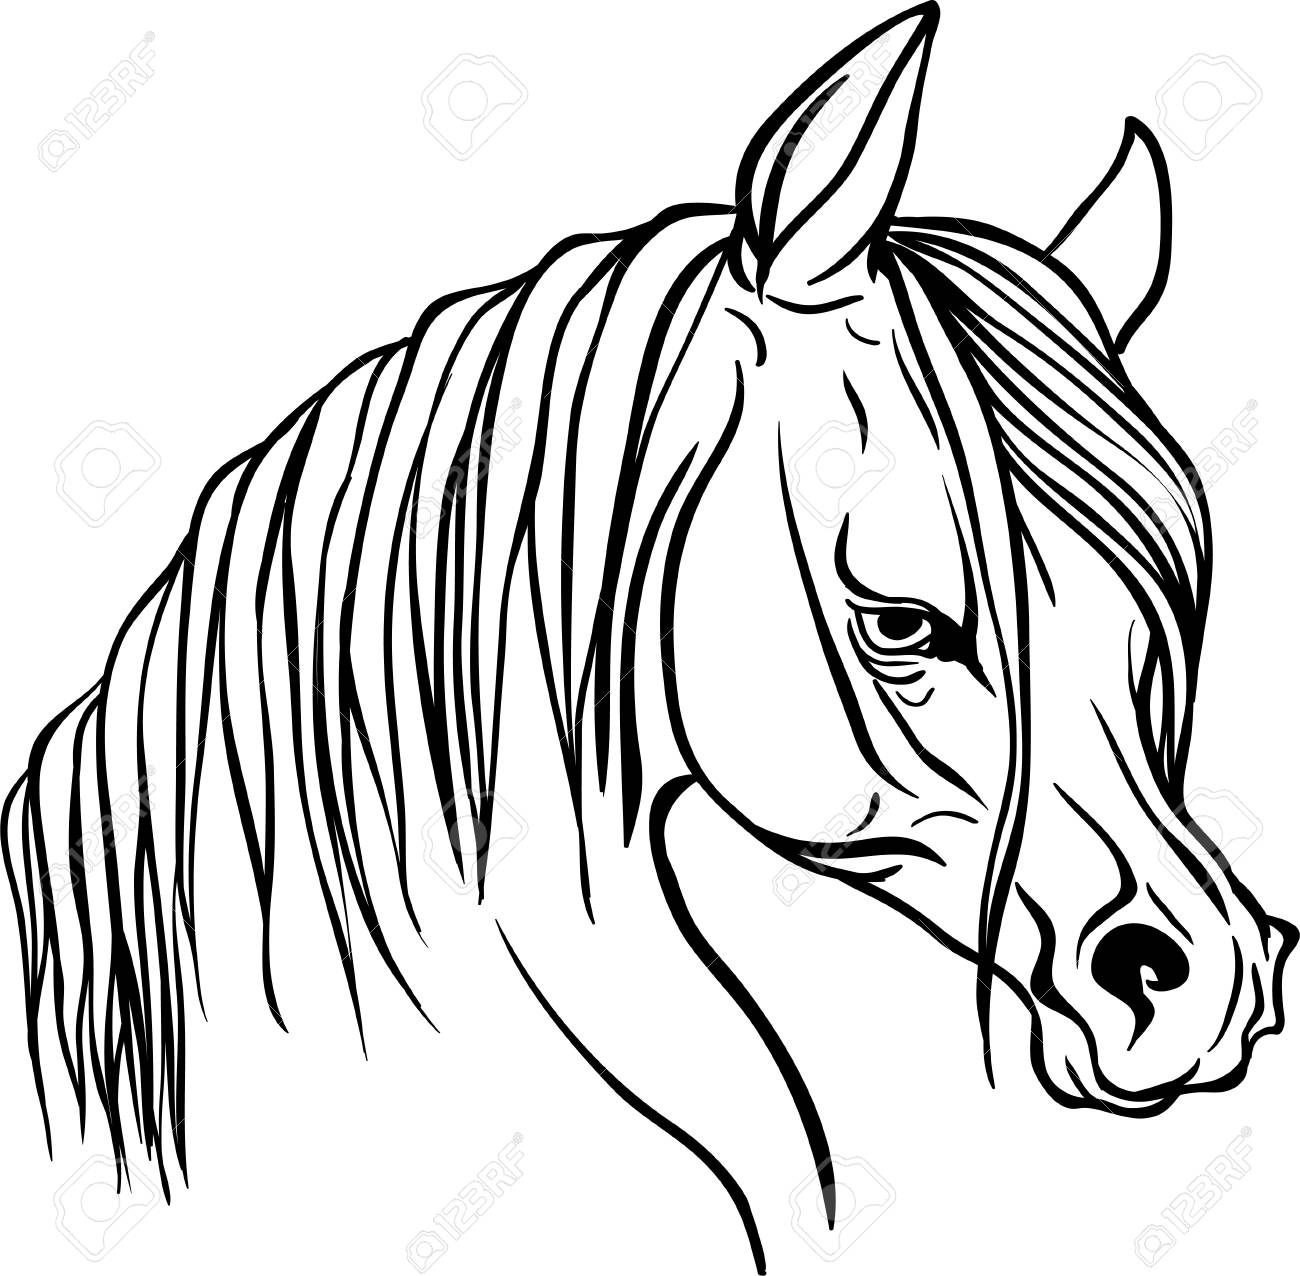 Horse Head For Coloring Book. Royalty Free Cliparts, Vectors, And ...